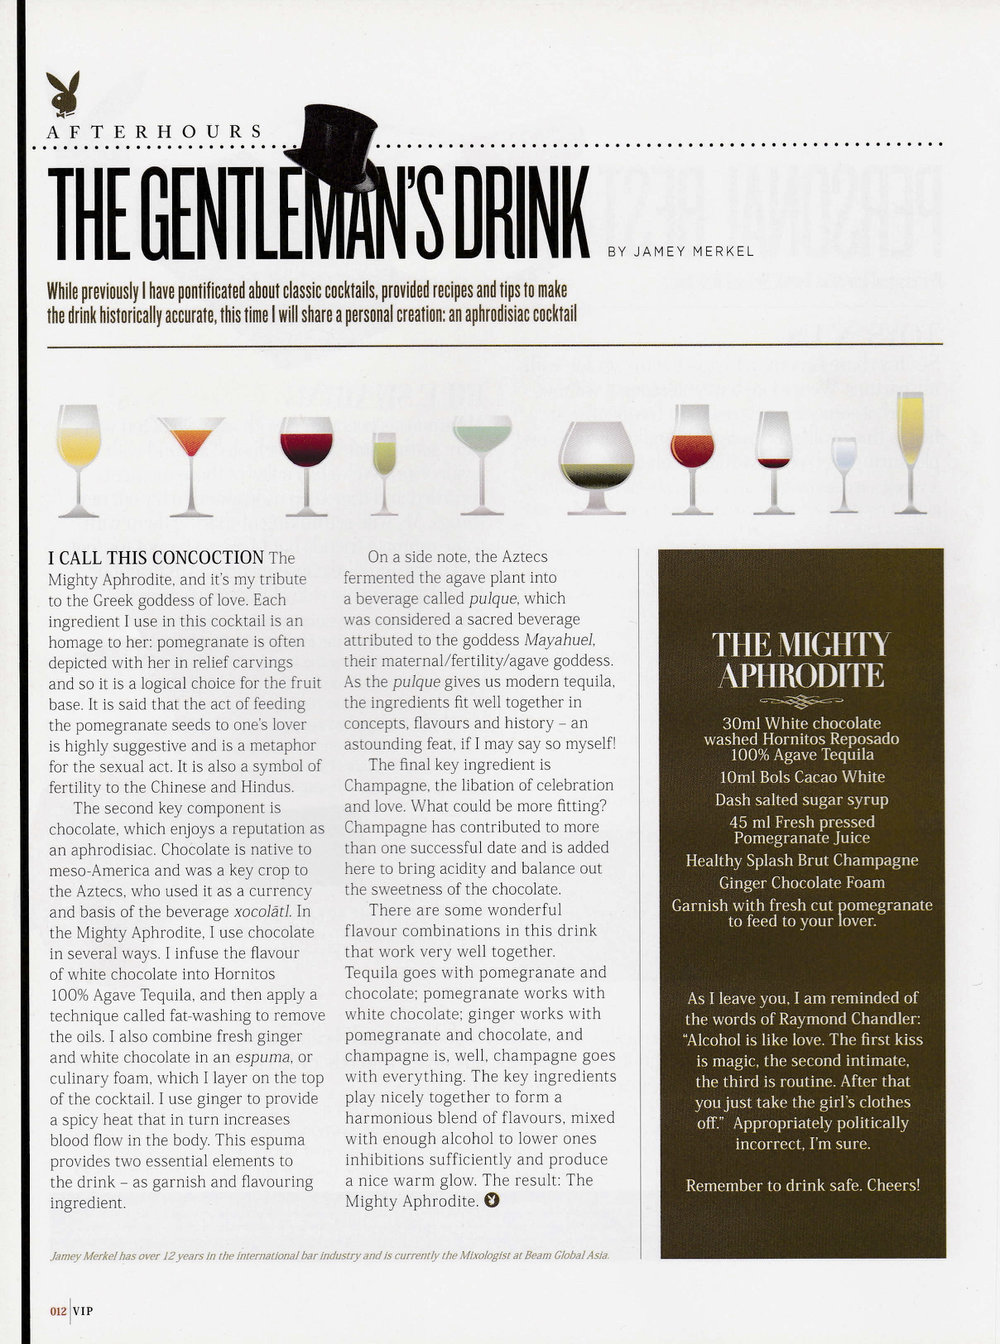 VIP  : Monthly column called The Gentleman's Drink